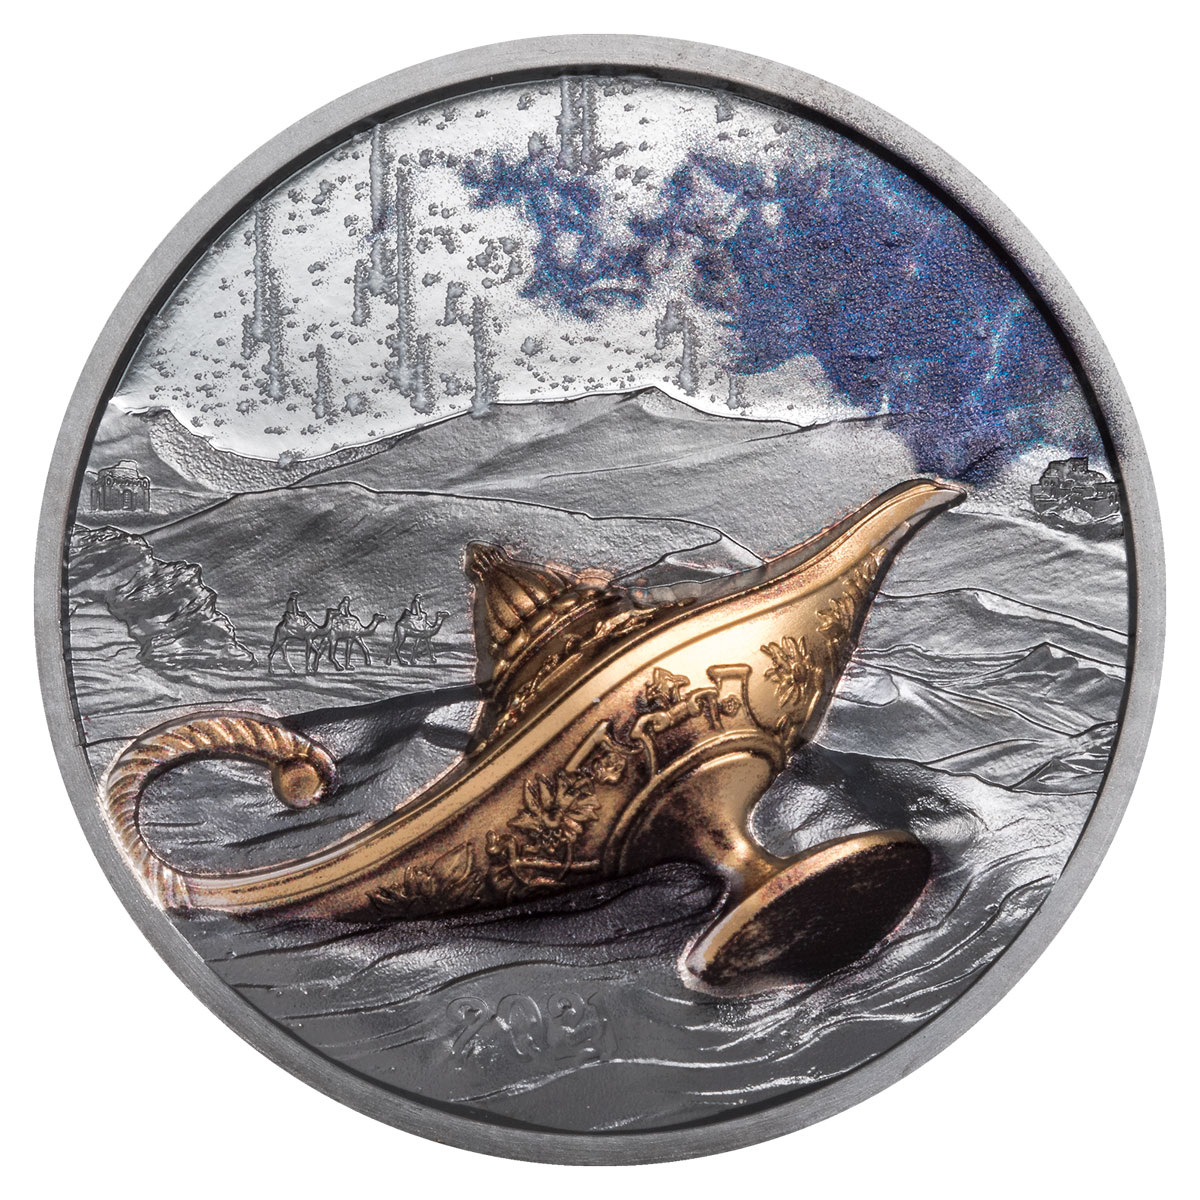 2021 Palau Magical Lamp Ultra High Relief 1 oz Silver Colorized Gilt Black Proof $5 Coin GEM Proof OGP